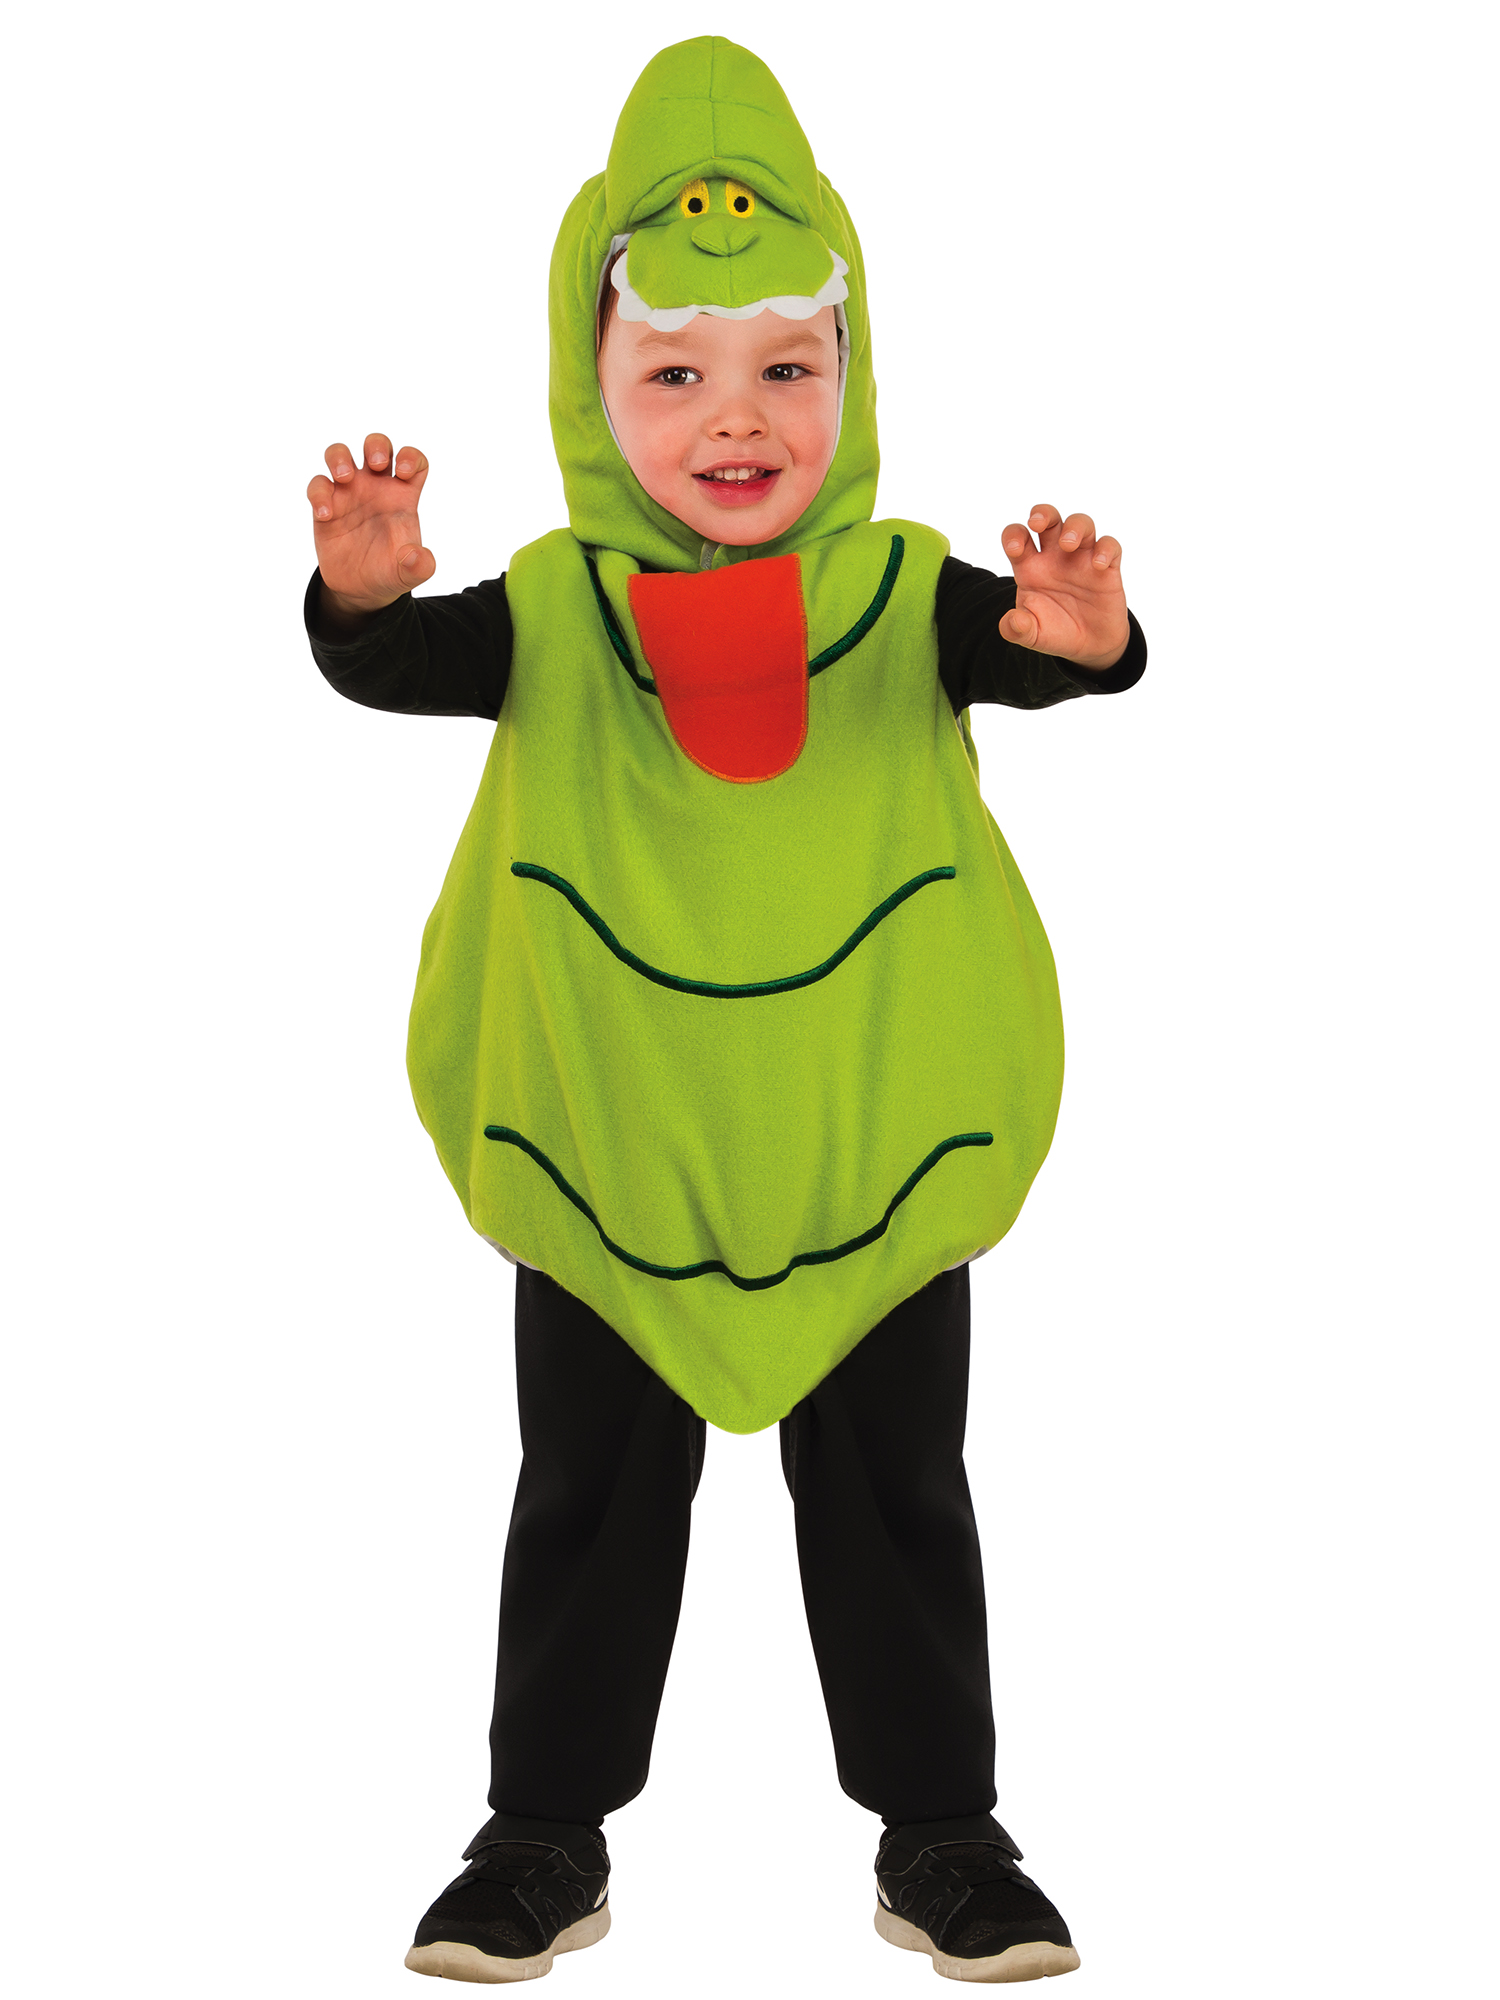 Ghostbusters Slimer Toddler Costume  sc 1 st  KOZ1 & Halloween Costumes for Adults u0026 Kids